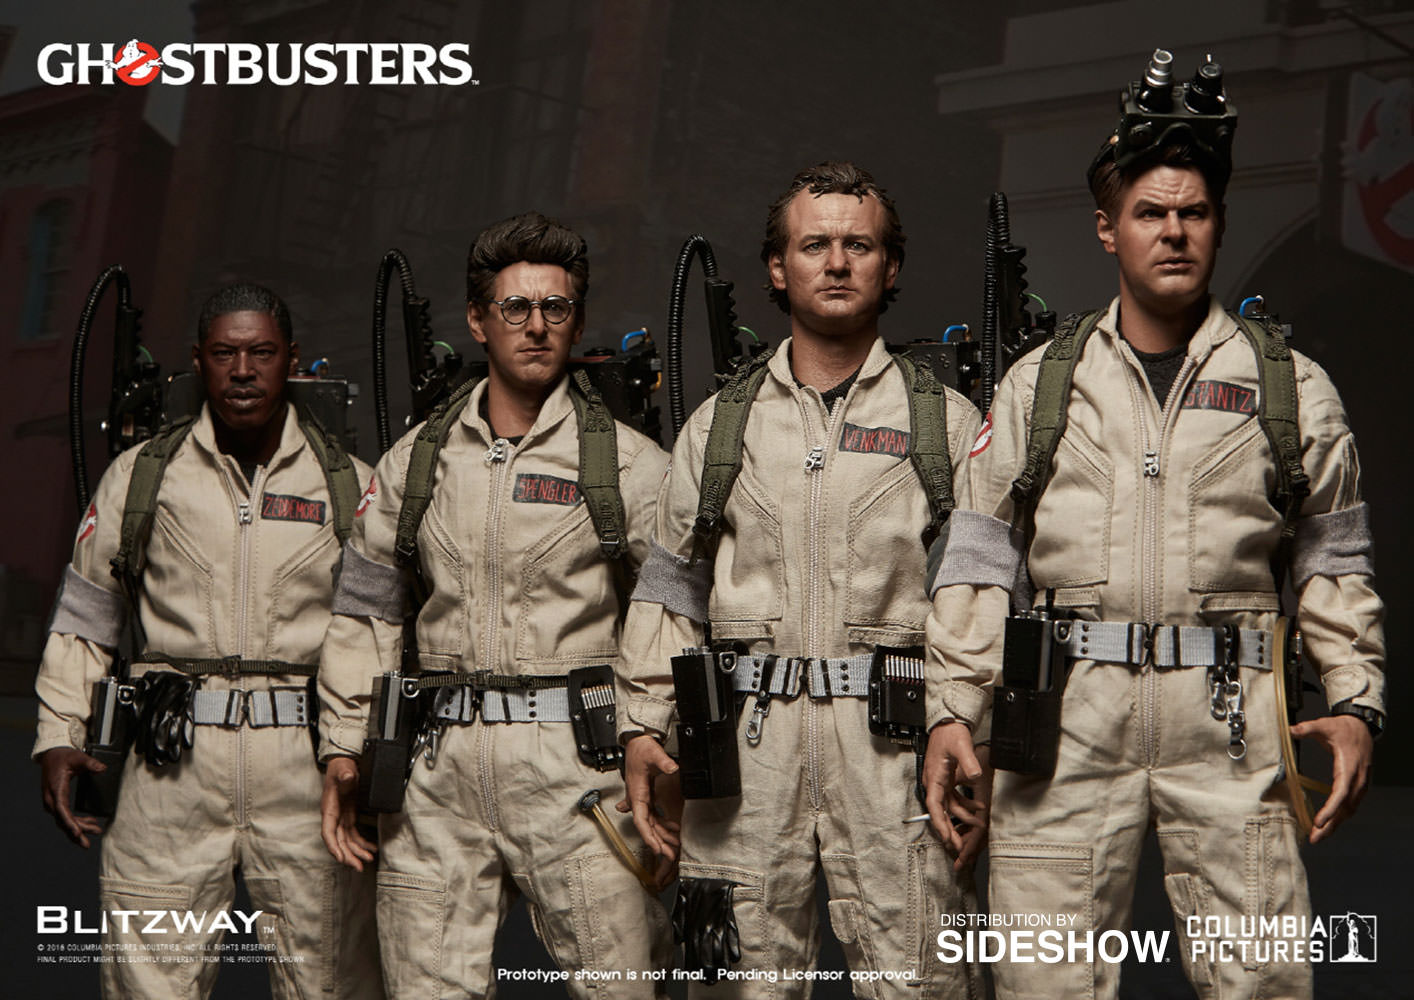 Ghostbusters Ghostbusters 1984 Special Pack Sixth Scale Figu Sideshow Collectibles